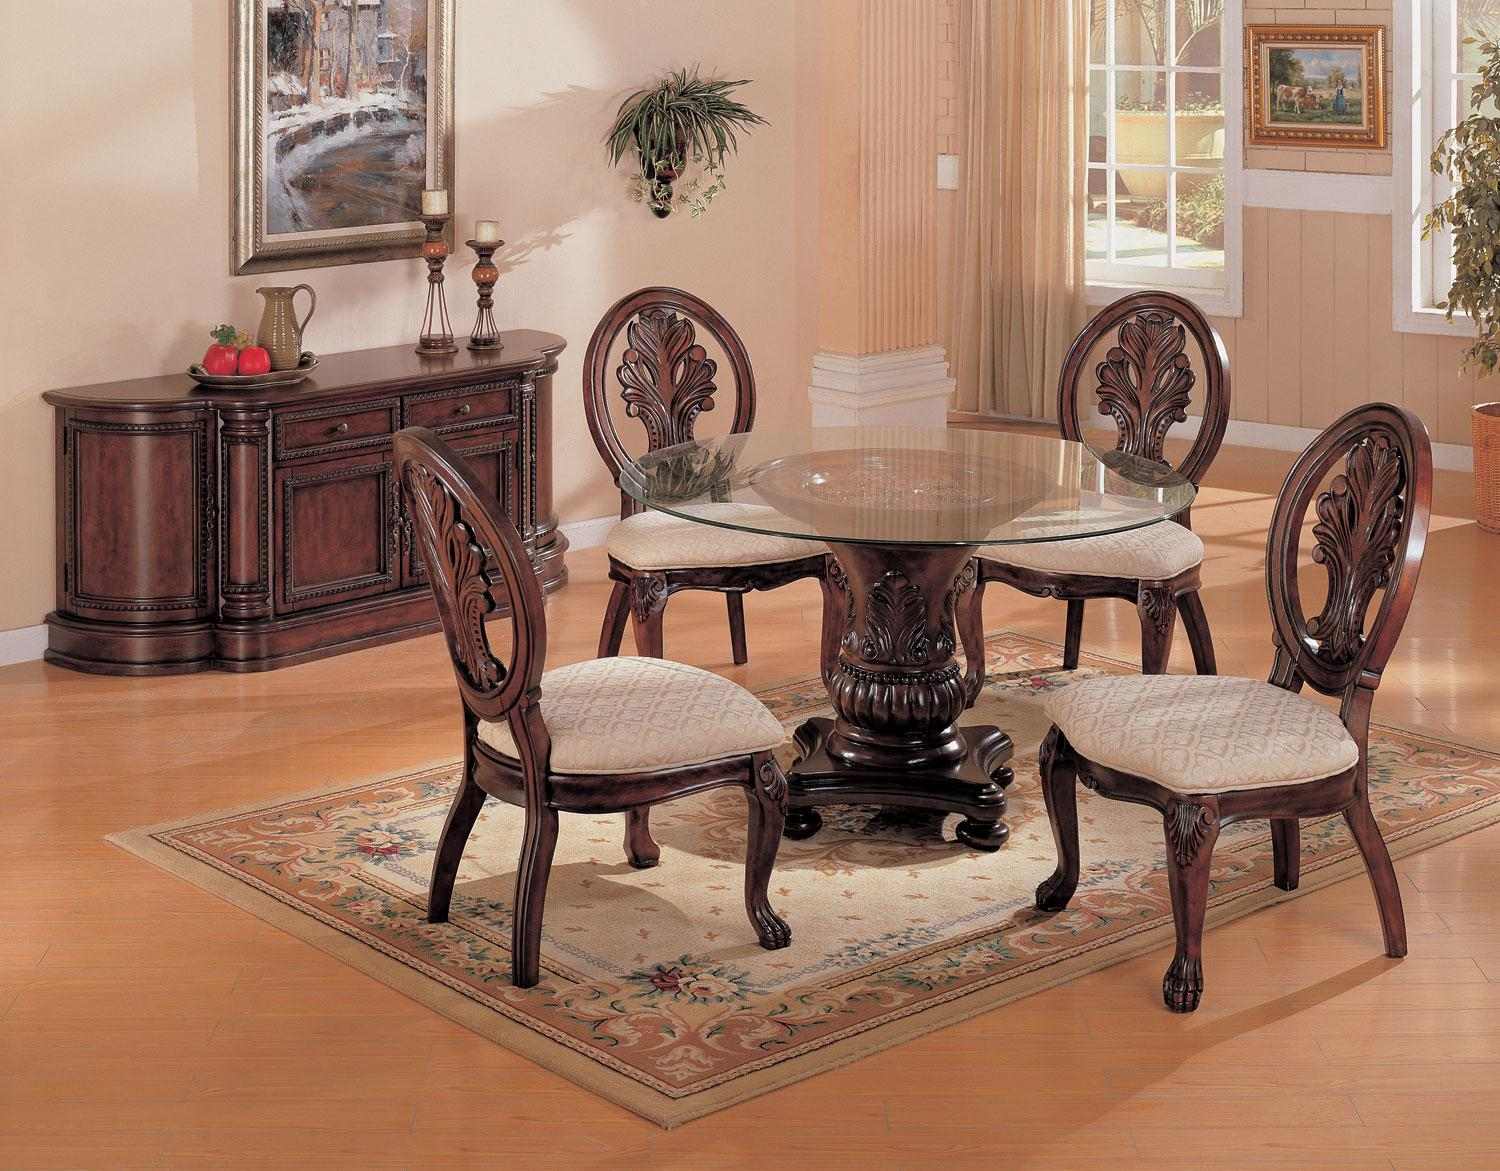 Round Dining Room Table Set - Formal Dining Room Table and Chairs - LaPorta Furniture - Discount Online Furniture